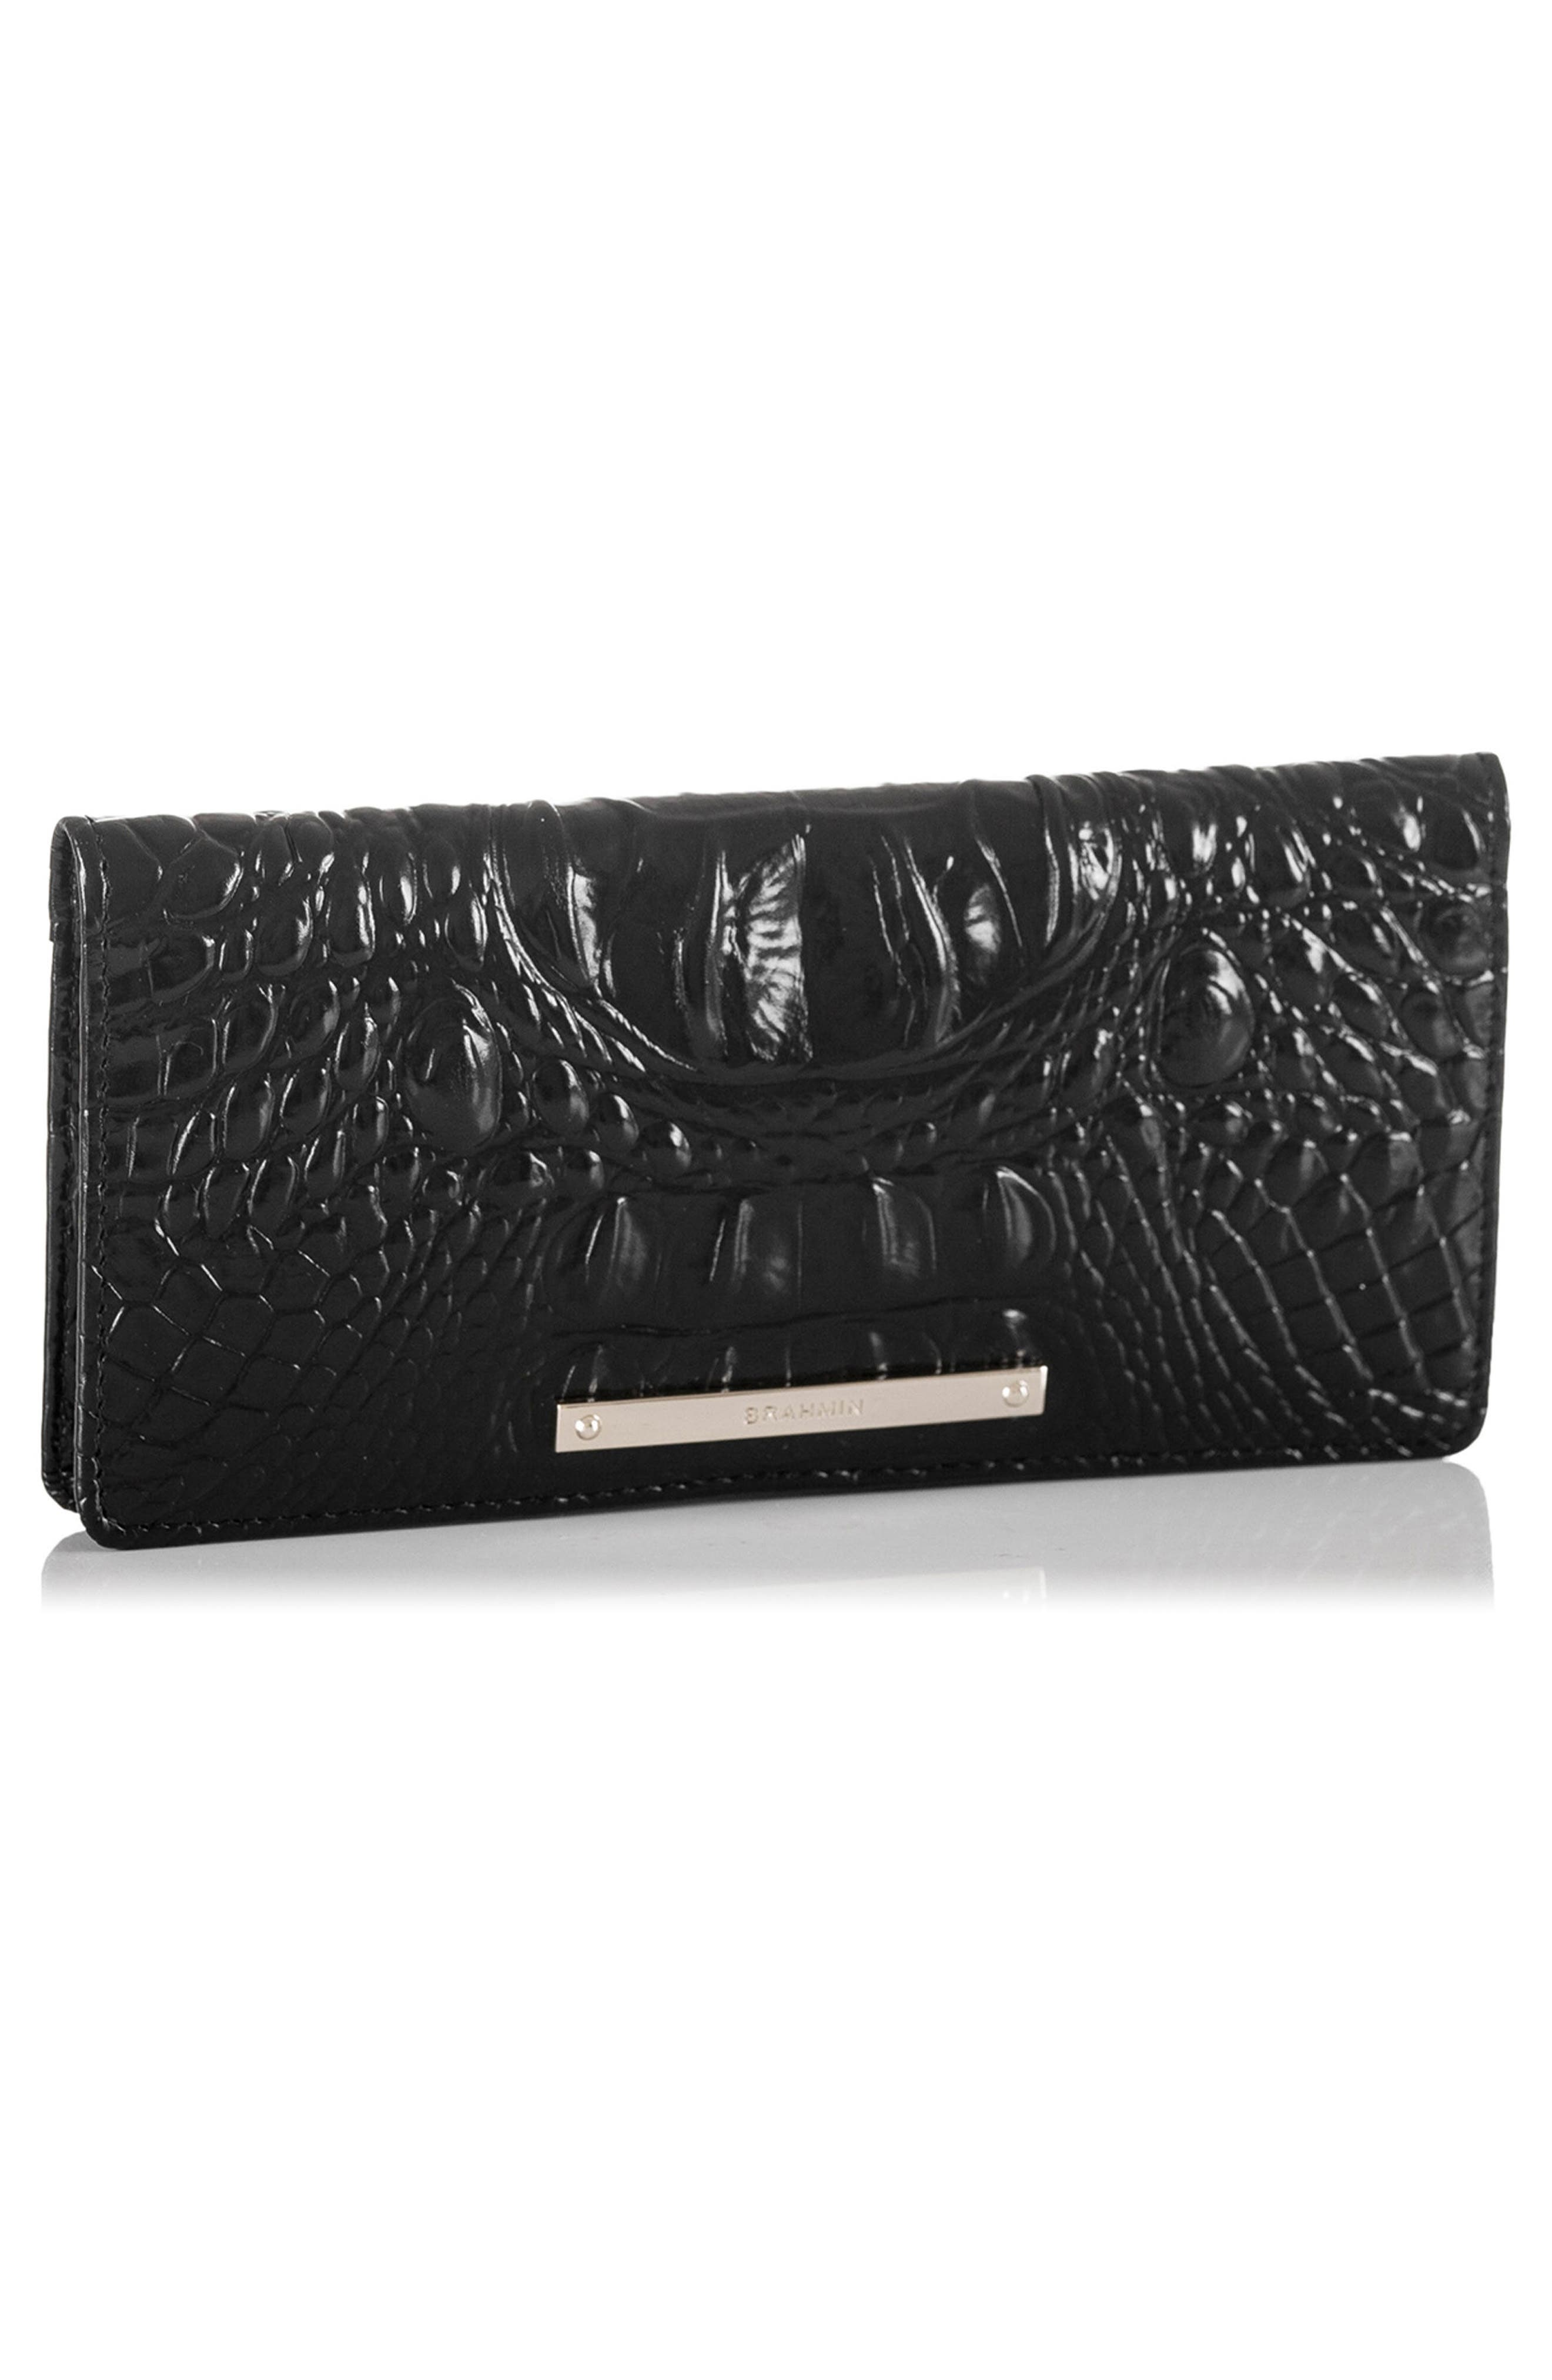 'Ady' Croc Embossed Continental Wallet,                             Alternate thumbnail 5, color,                             BLACK